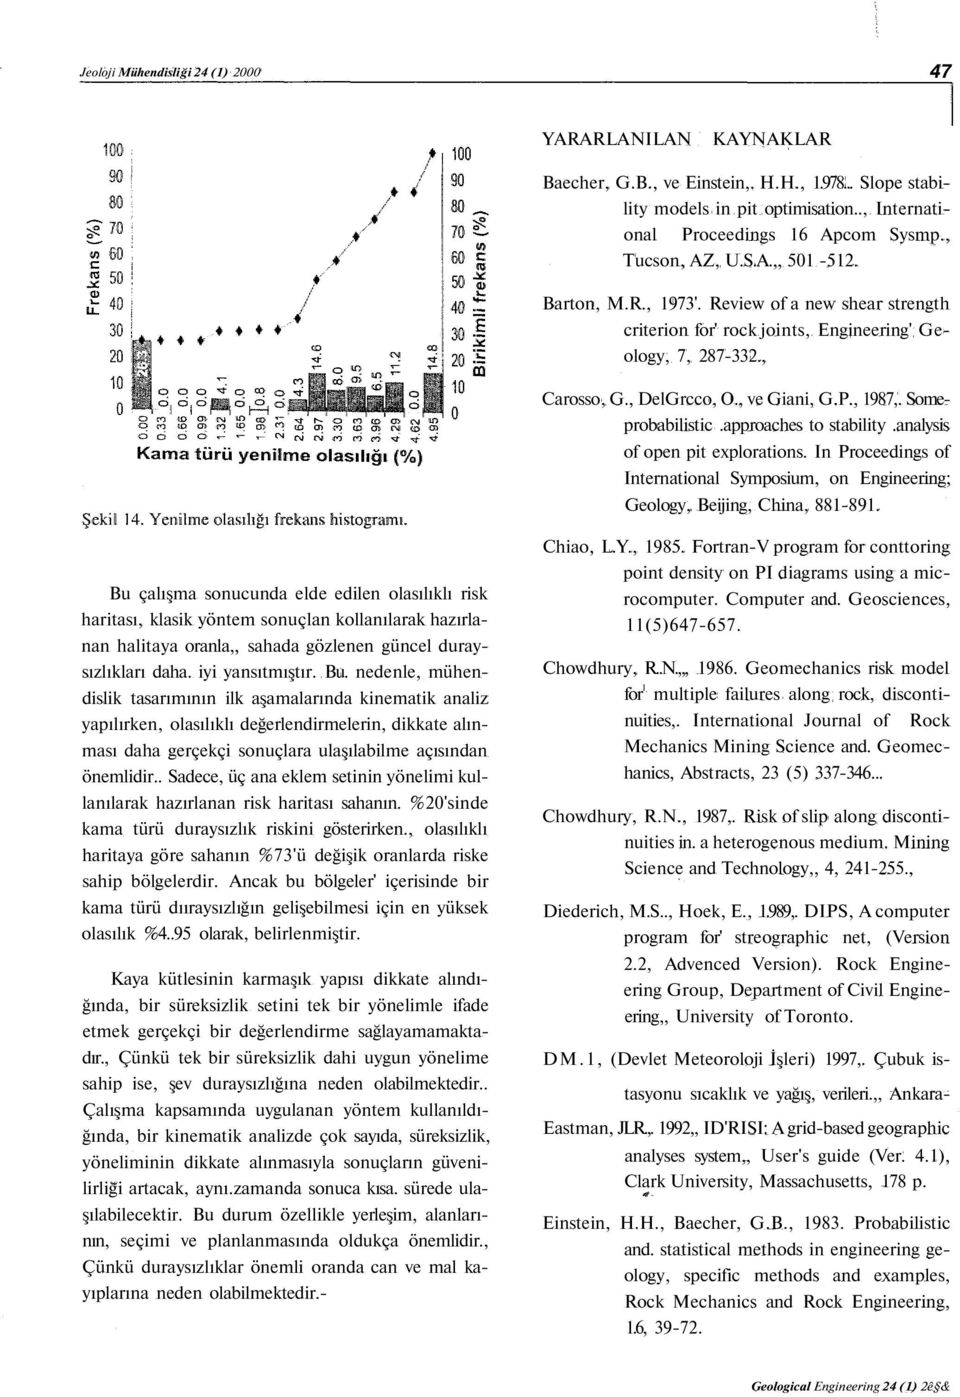 Someprobabilistic.approaches to stability.analysis of open pit explorations. In Proceedings of International Symposium, on Engineering; Geology, Beijing, China, 881-891.